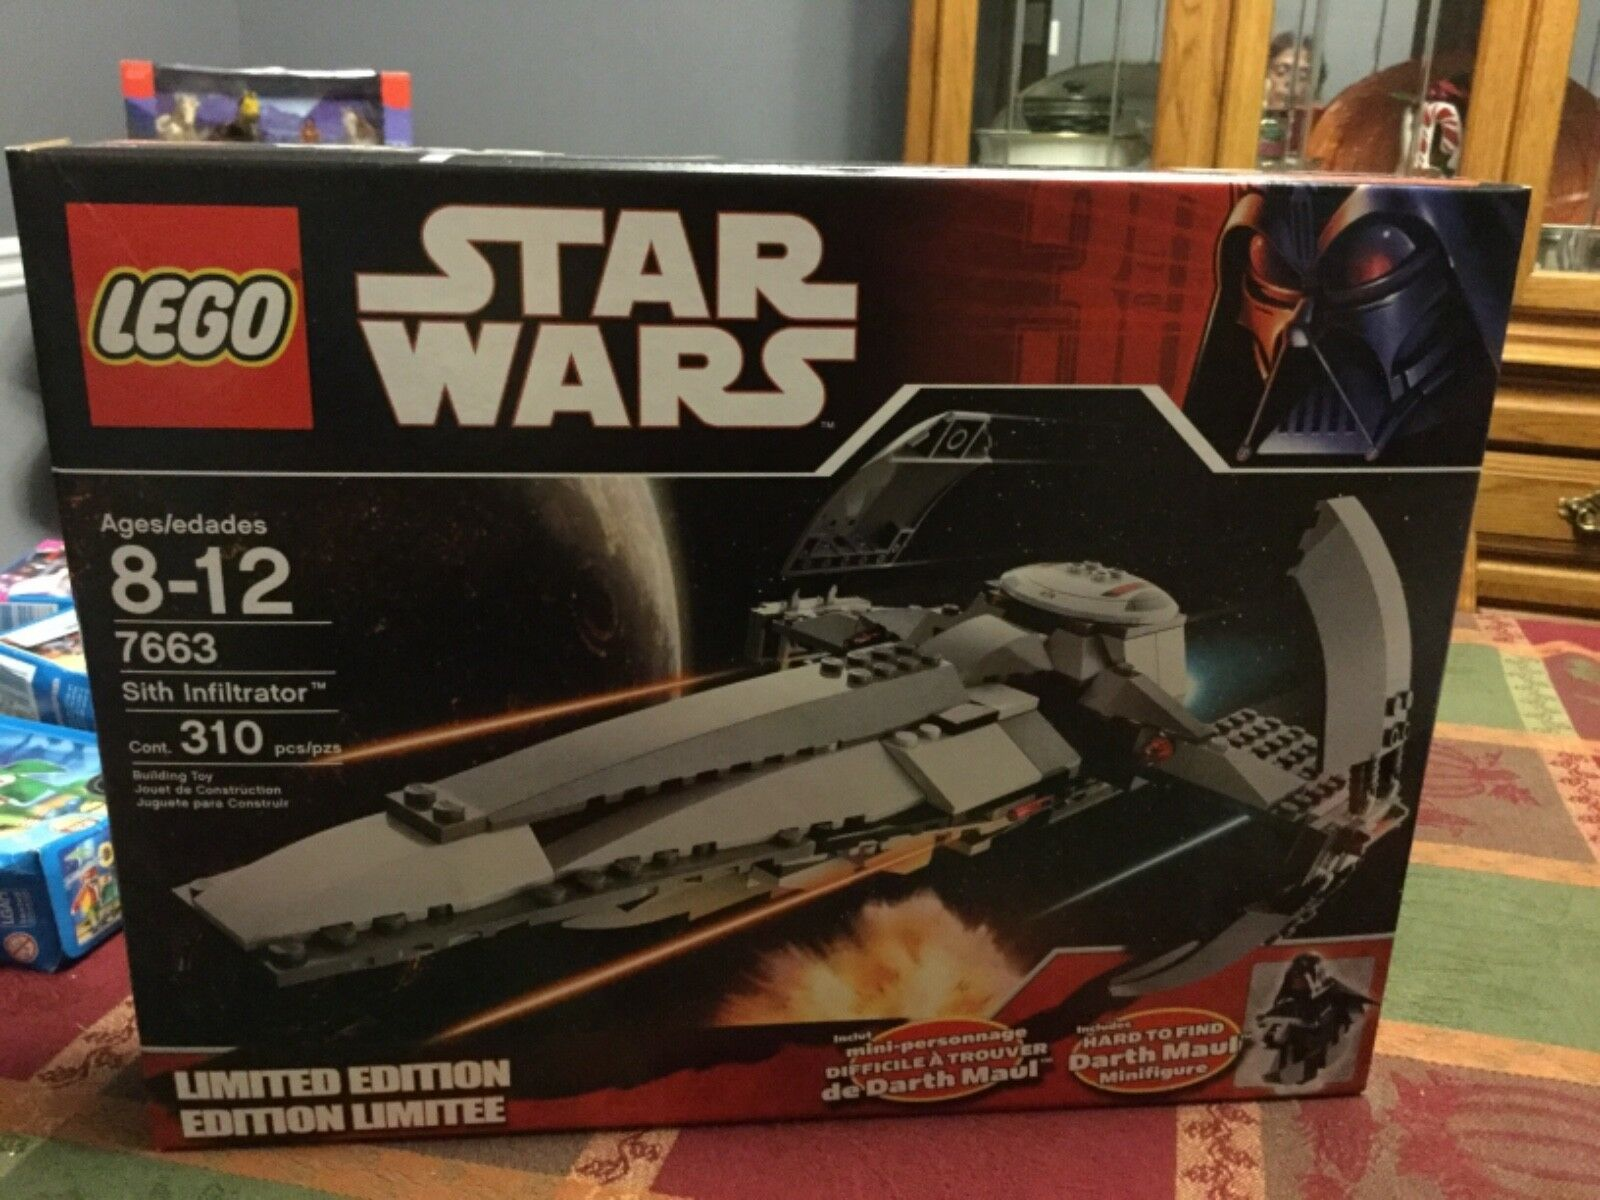 BRAND NEW  FACTORY SEALED  STAR WARS LEGO 7663 SITH INFILTRATOR LIMITED EDITION